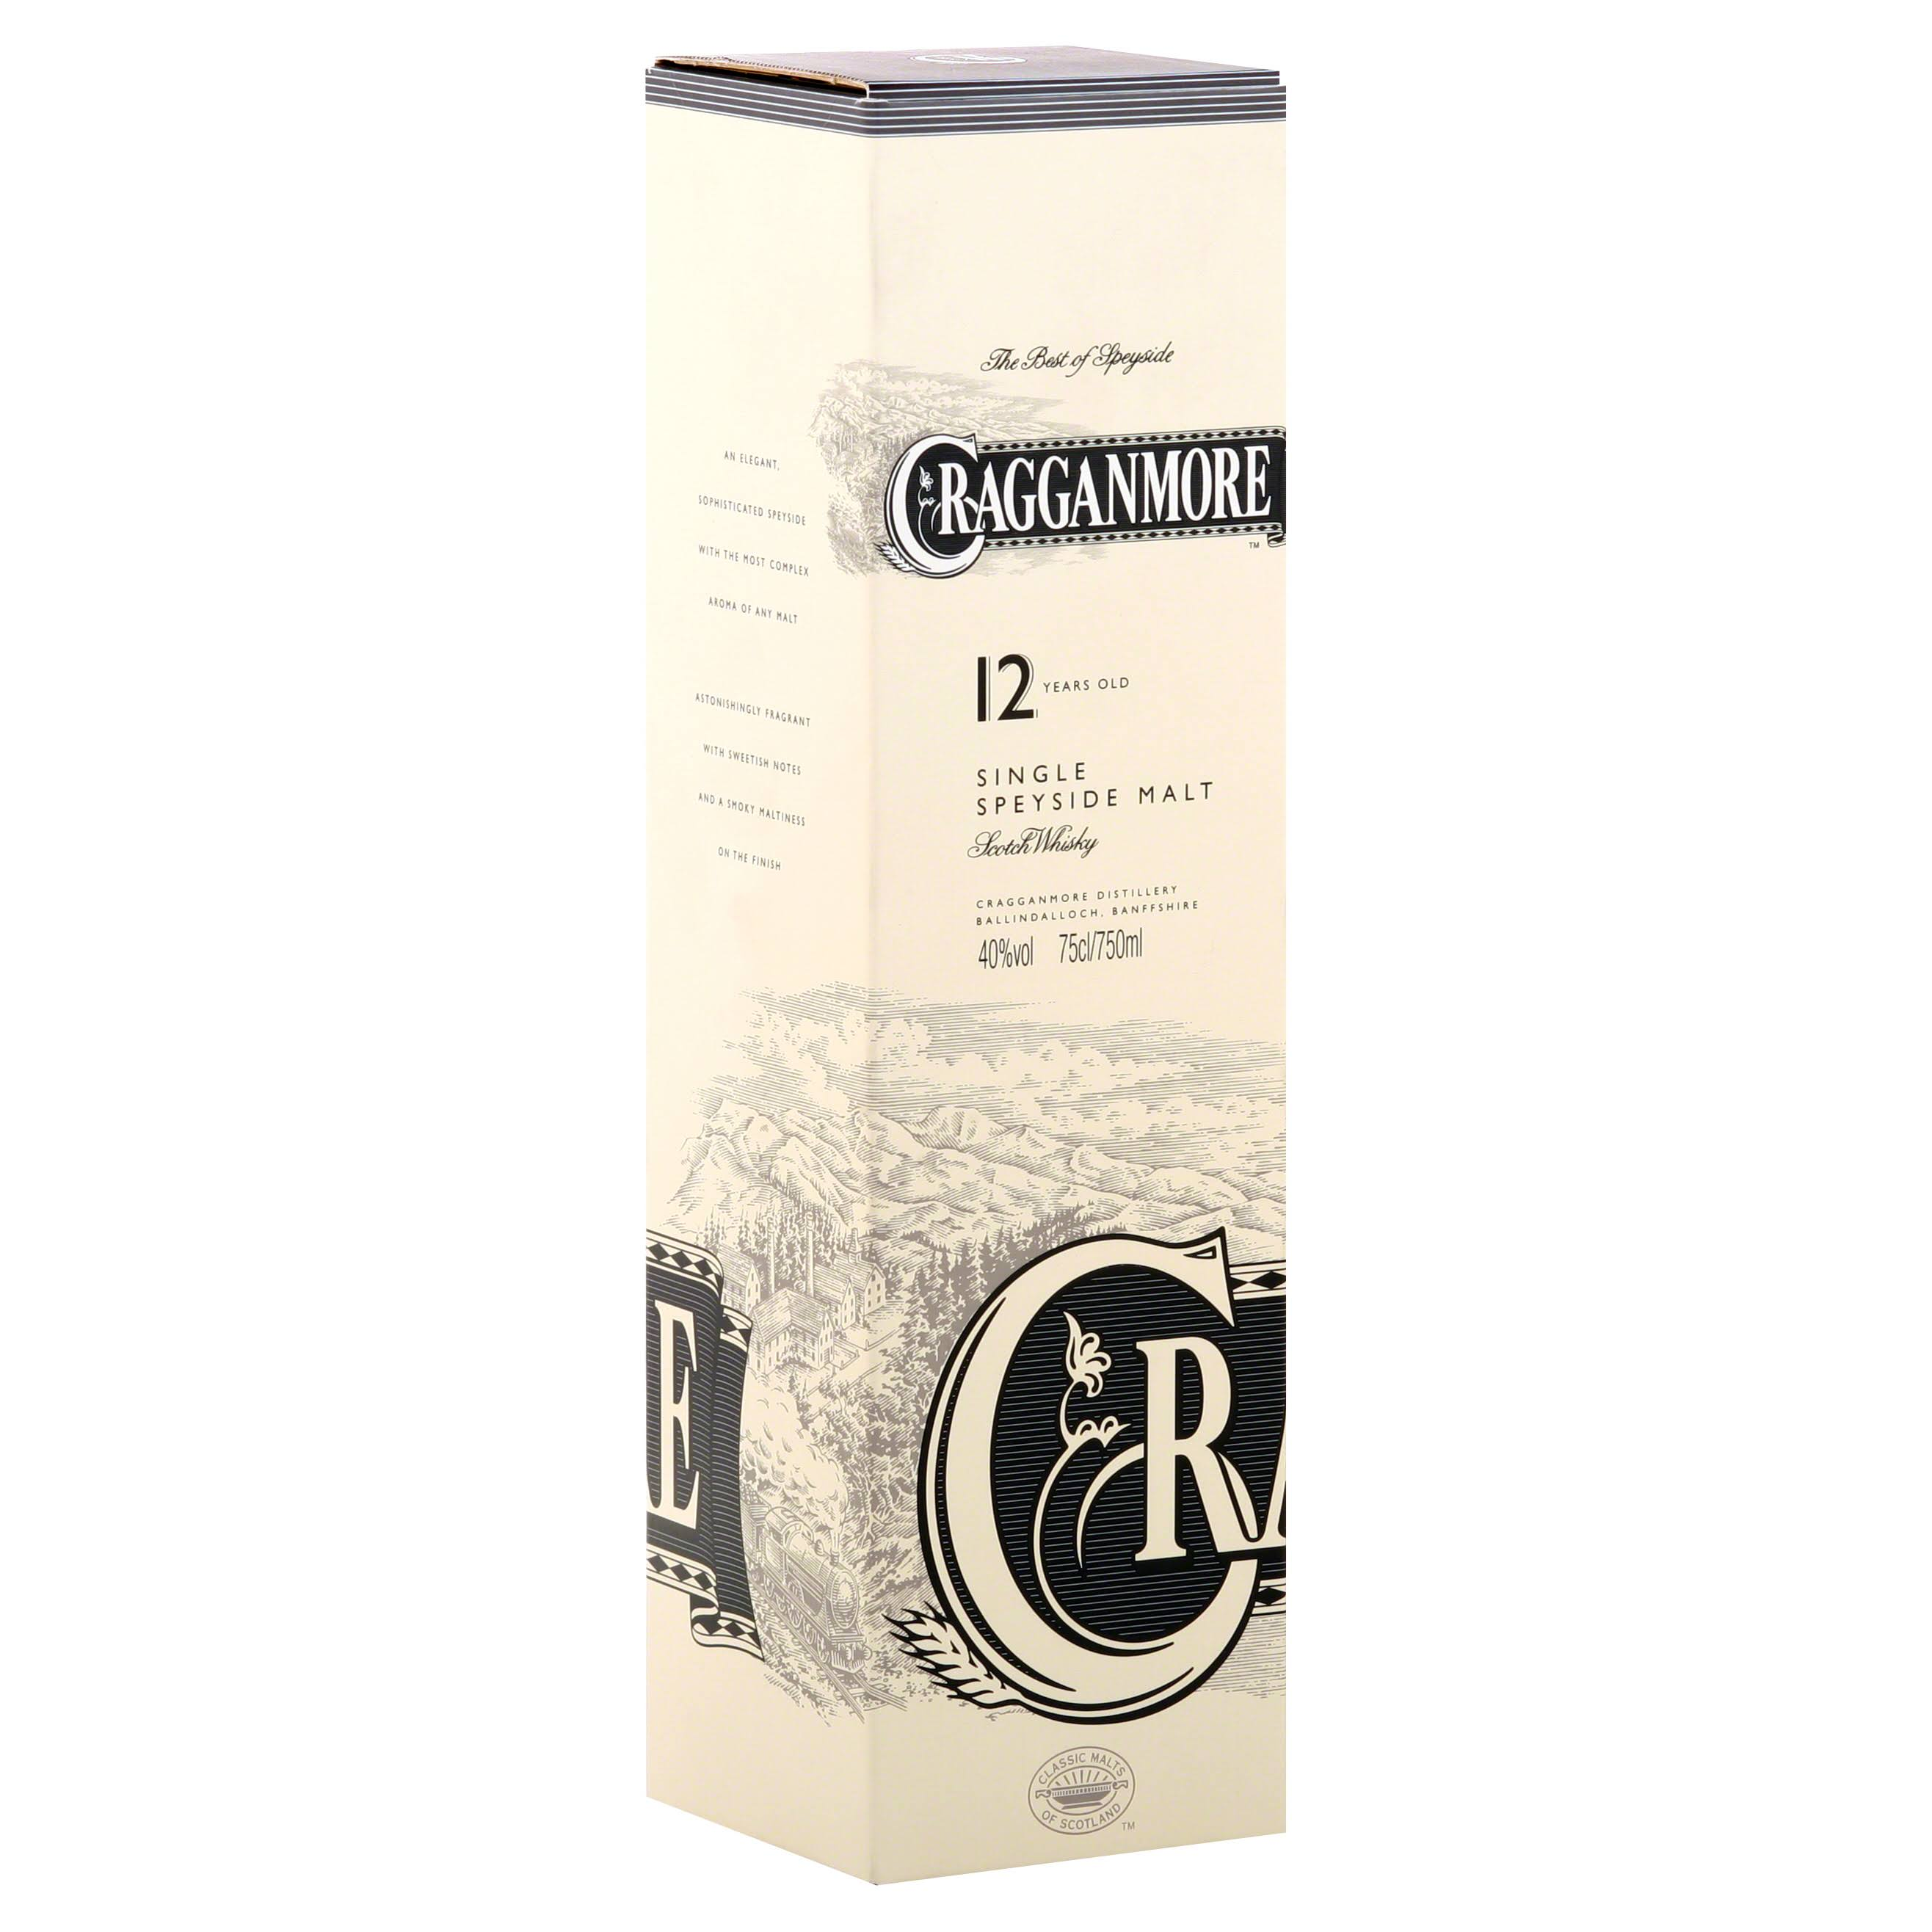 Cragganmore Single Malt 12 Year Scotch Whiskey - 750ml